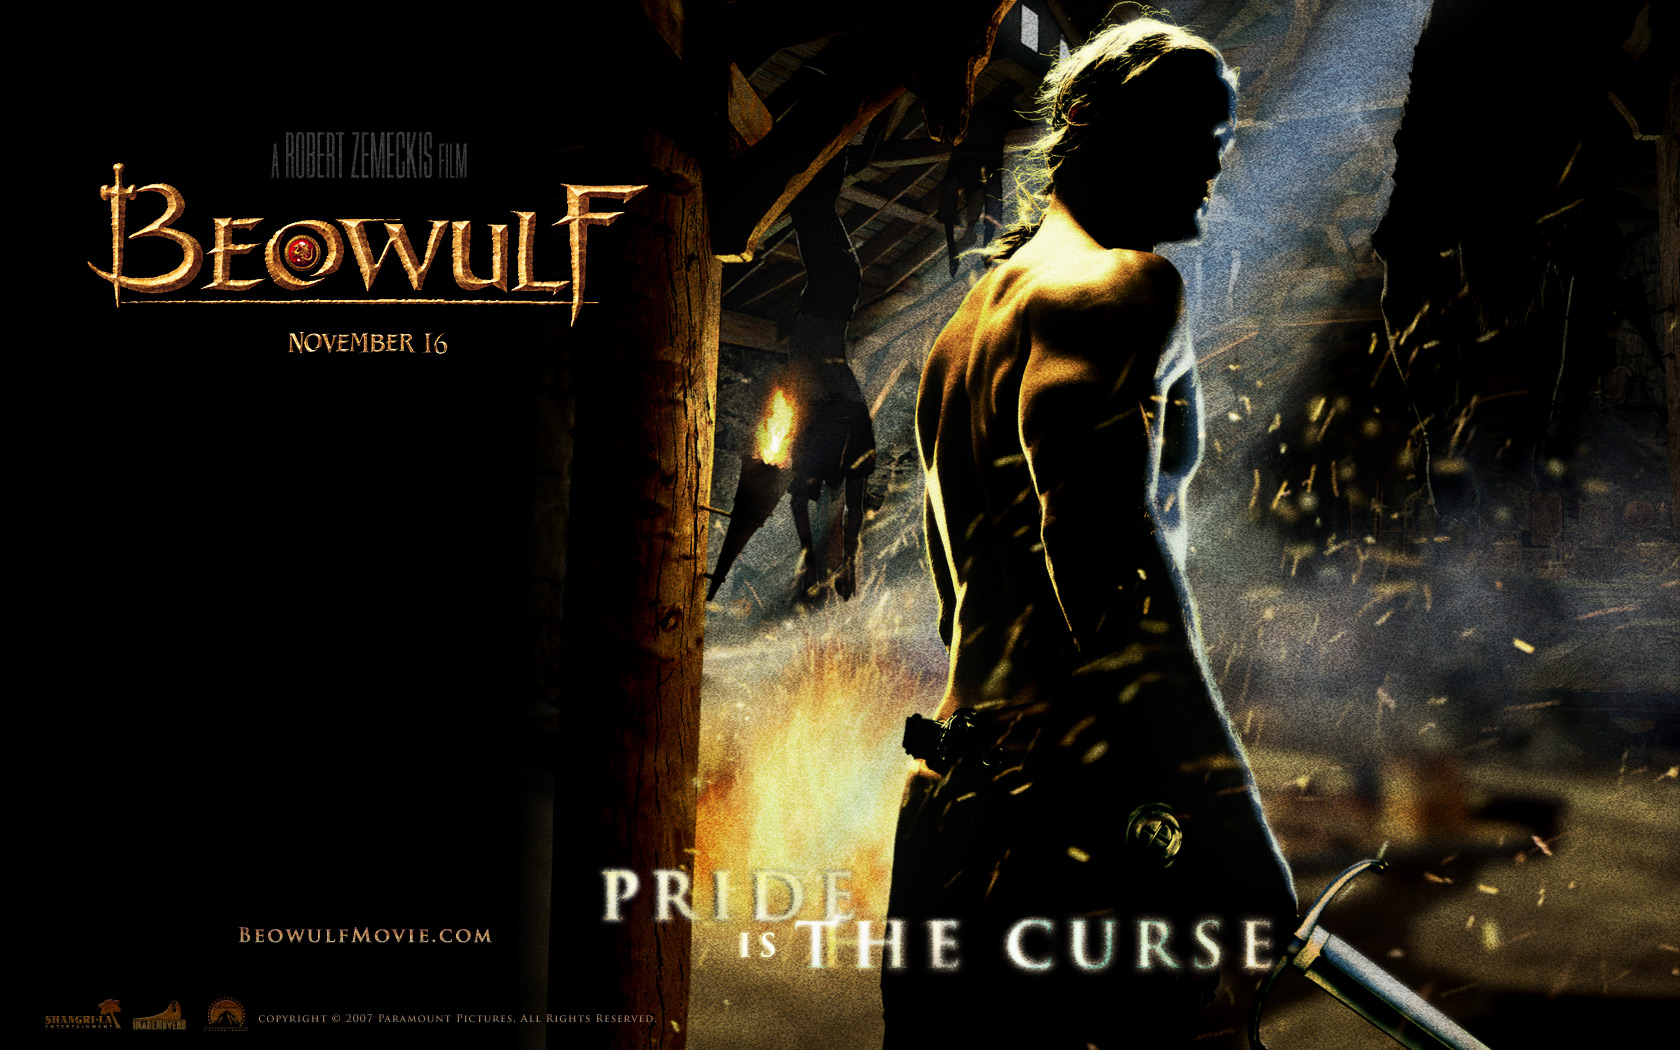 beowulf's pride good bad or both